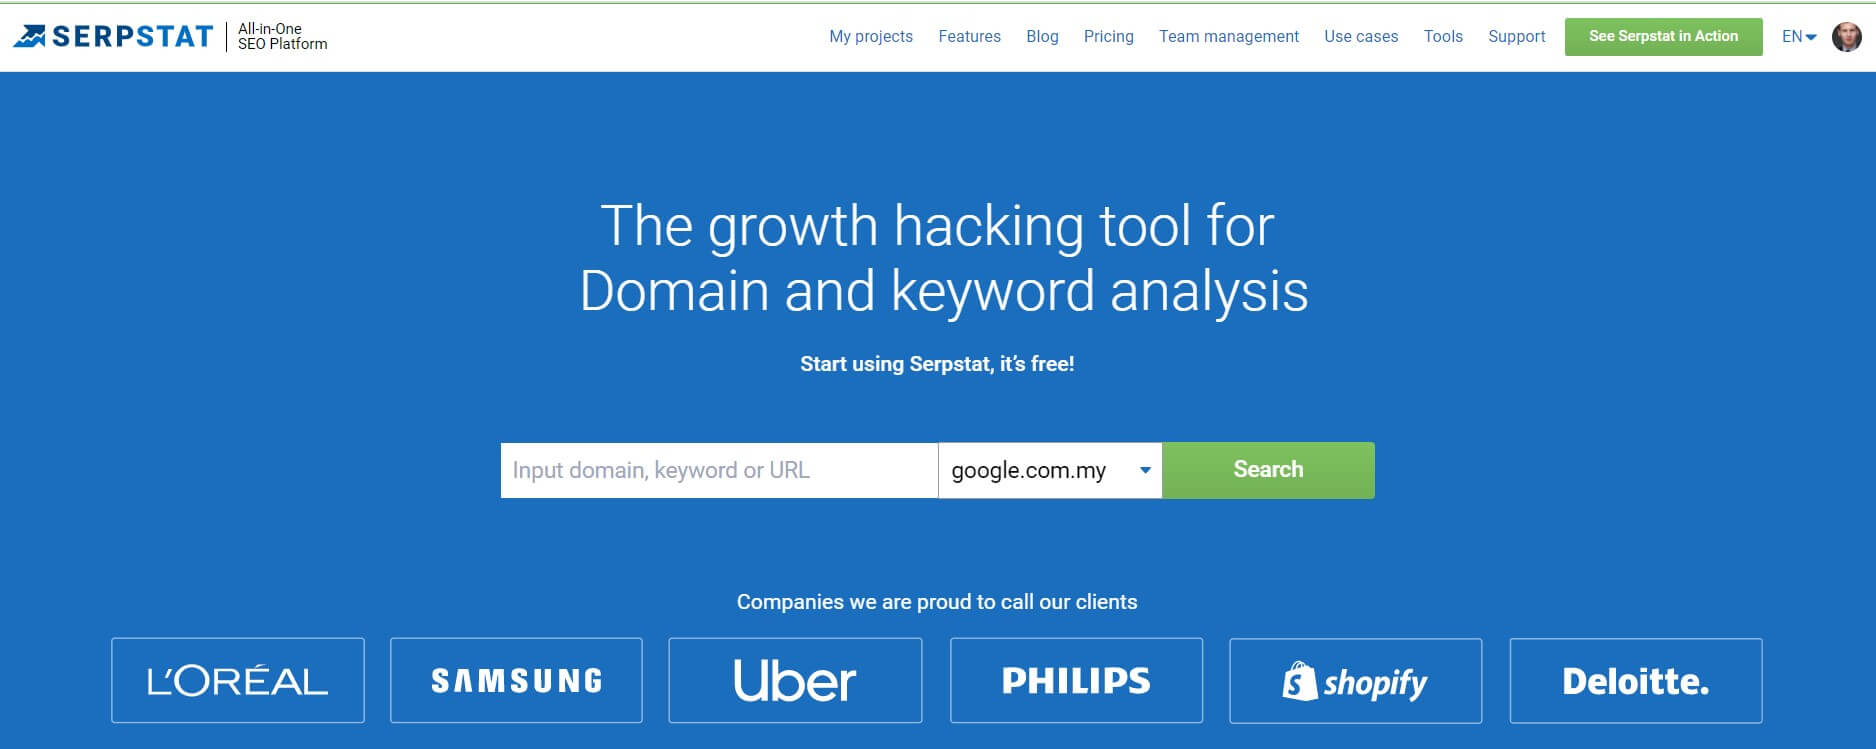 Serpstat is an All-in-one SEO platform which provides more than 20 tools: Competitor Analysis, Keyword Research, Backlink Analysis, Site Audit and Rank Tracker and many more. Serpstat is the fastest-growing SEO tool on the market that provides comprehensive search analytics data to more than 300,000 users. Top B2B SEO Tools today